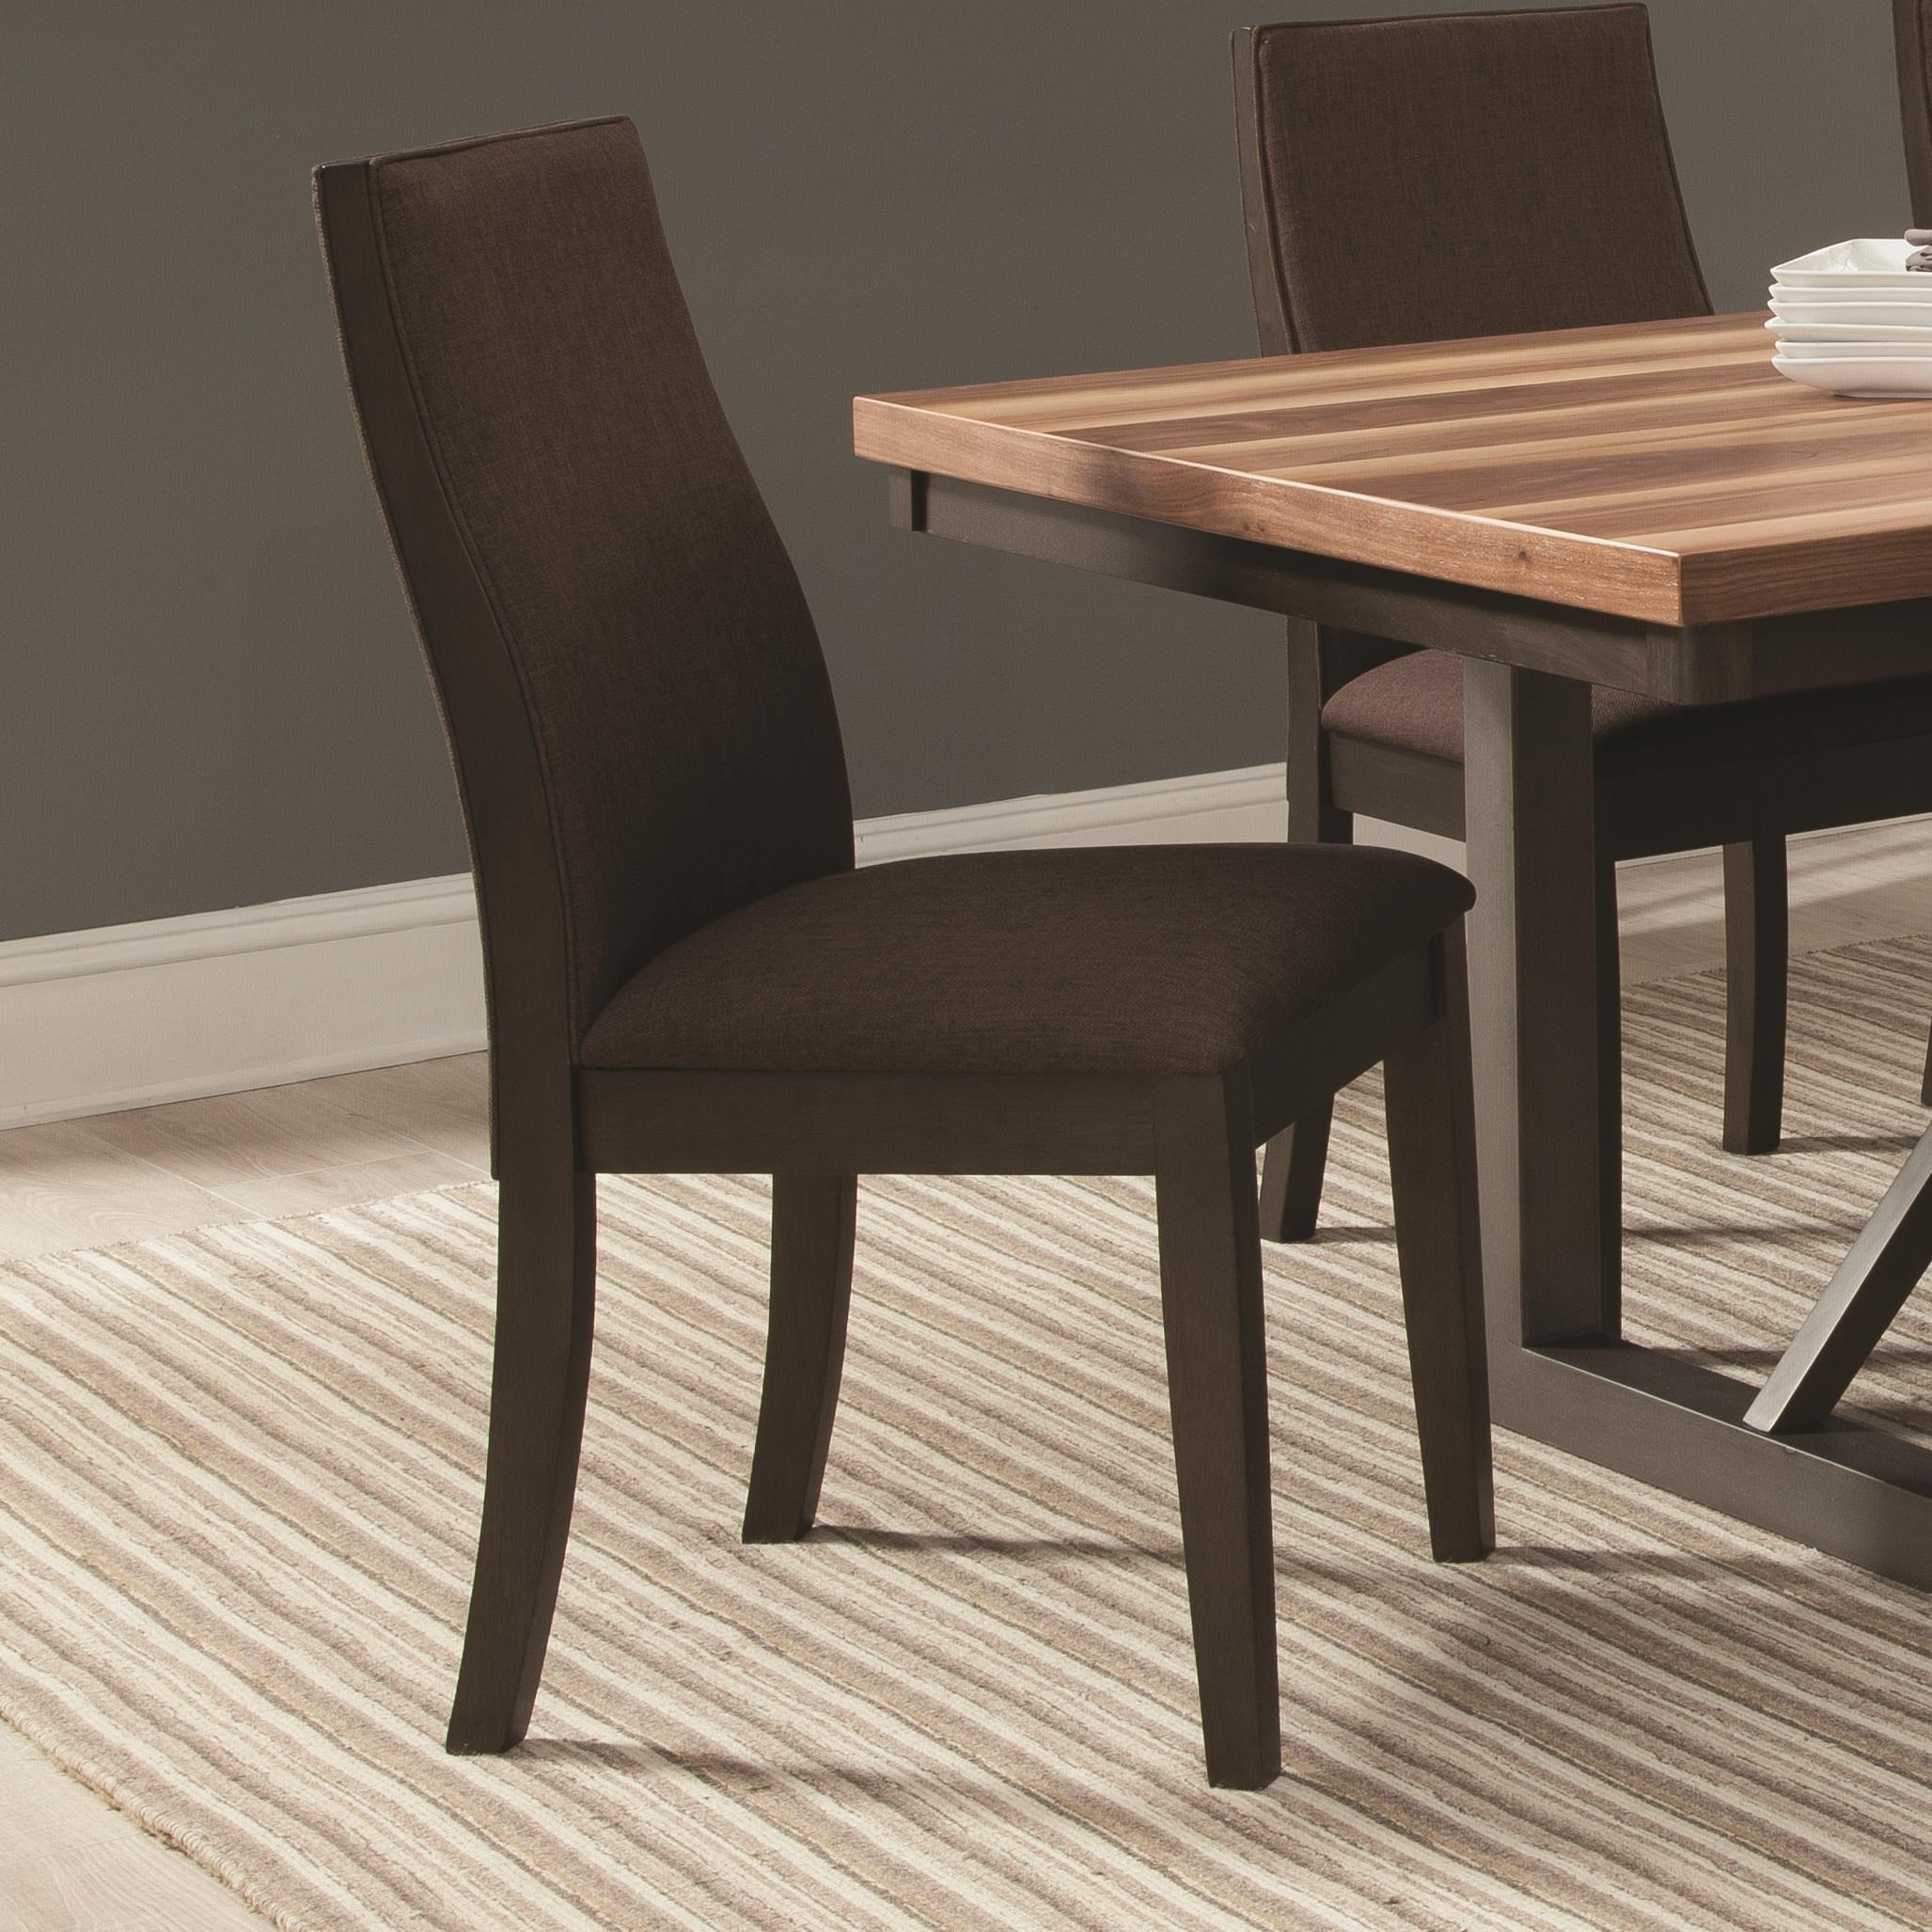 Coaster Spring CreekDining Chair Coaster Spring